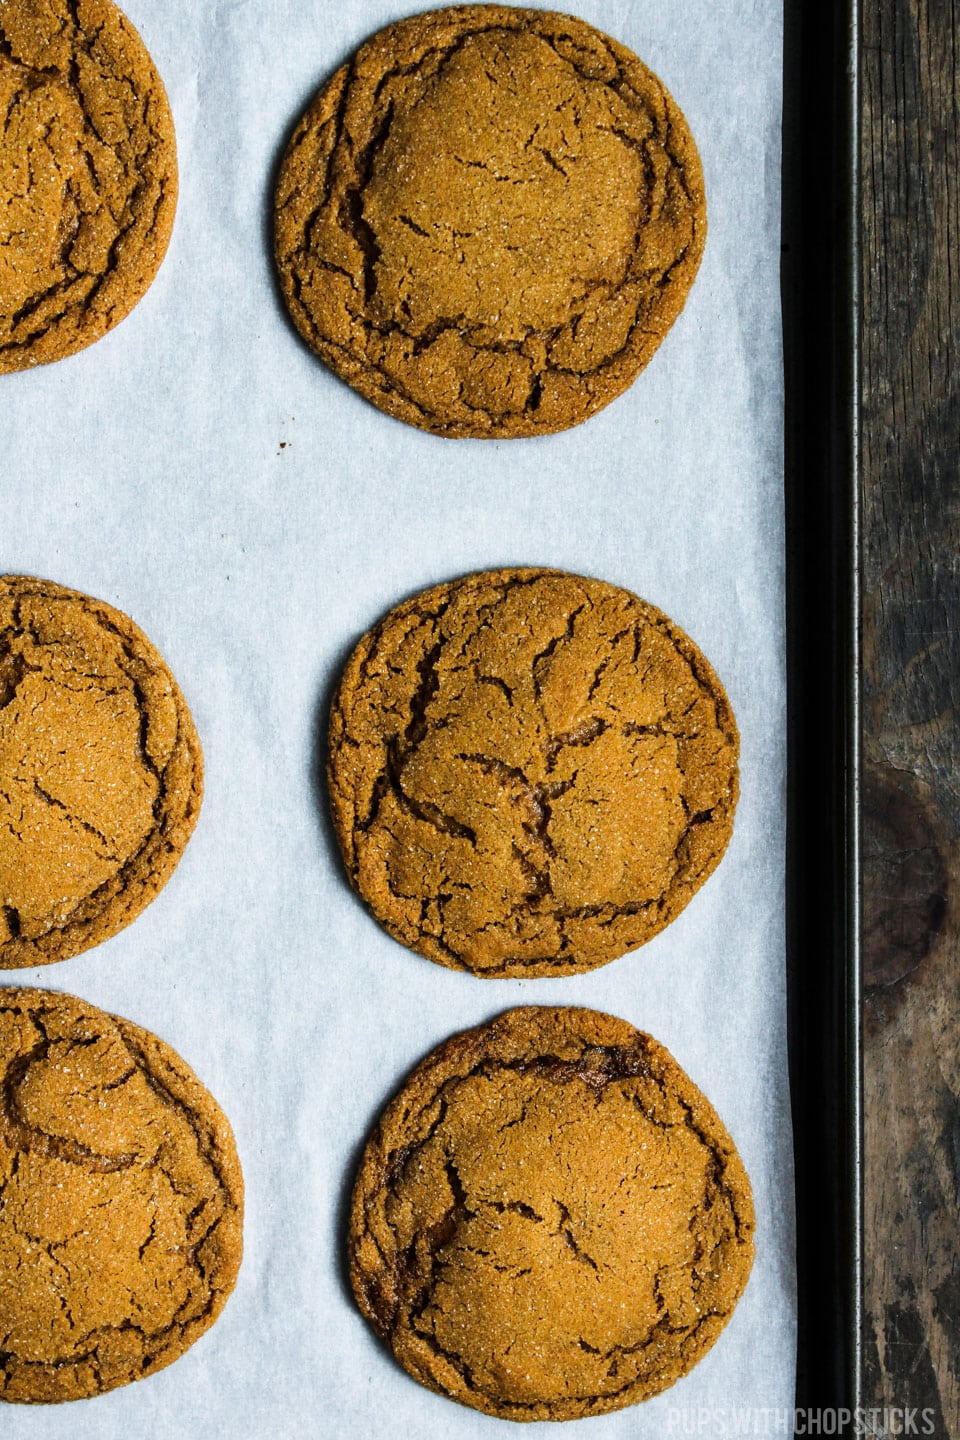 These chewy ginger molasses cookies are soft and chewy with a hint of five spice and vanilla. They are fantastic on their own, and absolutely to die for when paired up with ice cream and made into a ice cream sandwich! #cookie #recipe #dessert #snack #gingermolasses #chewy #soft